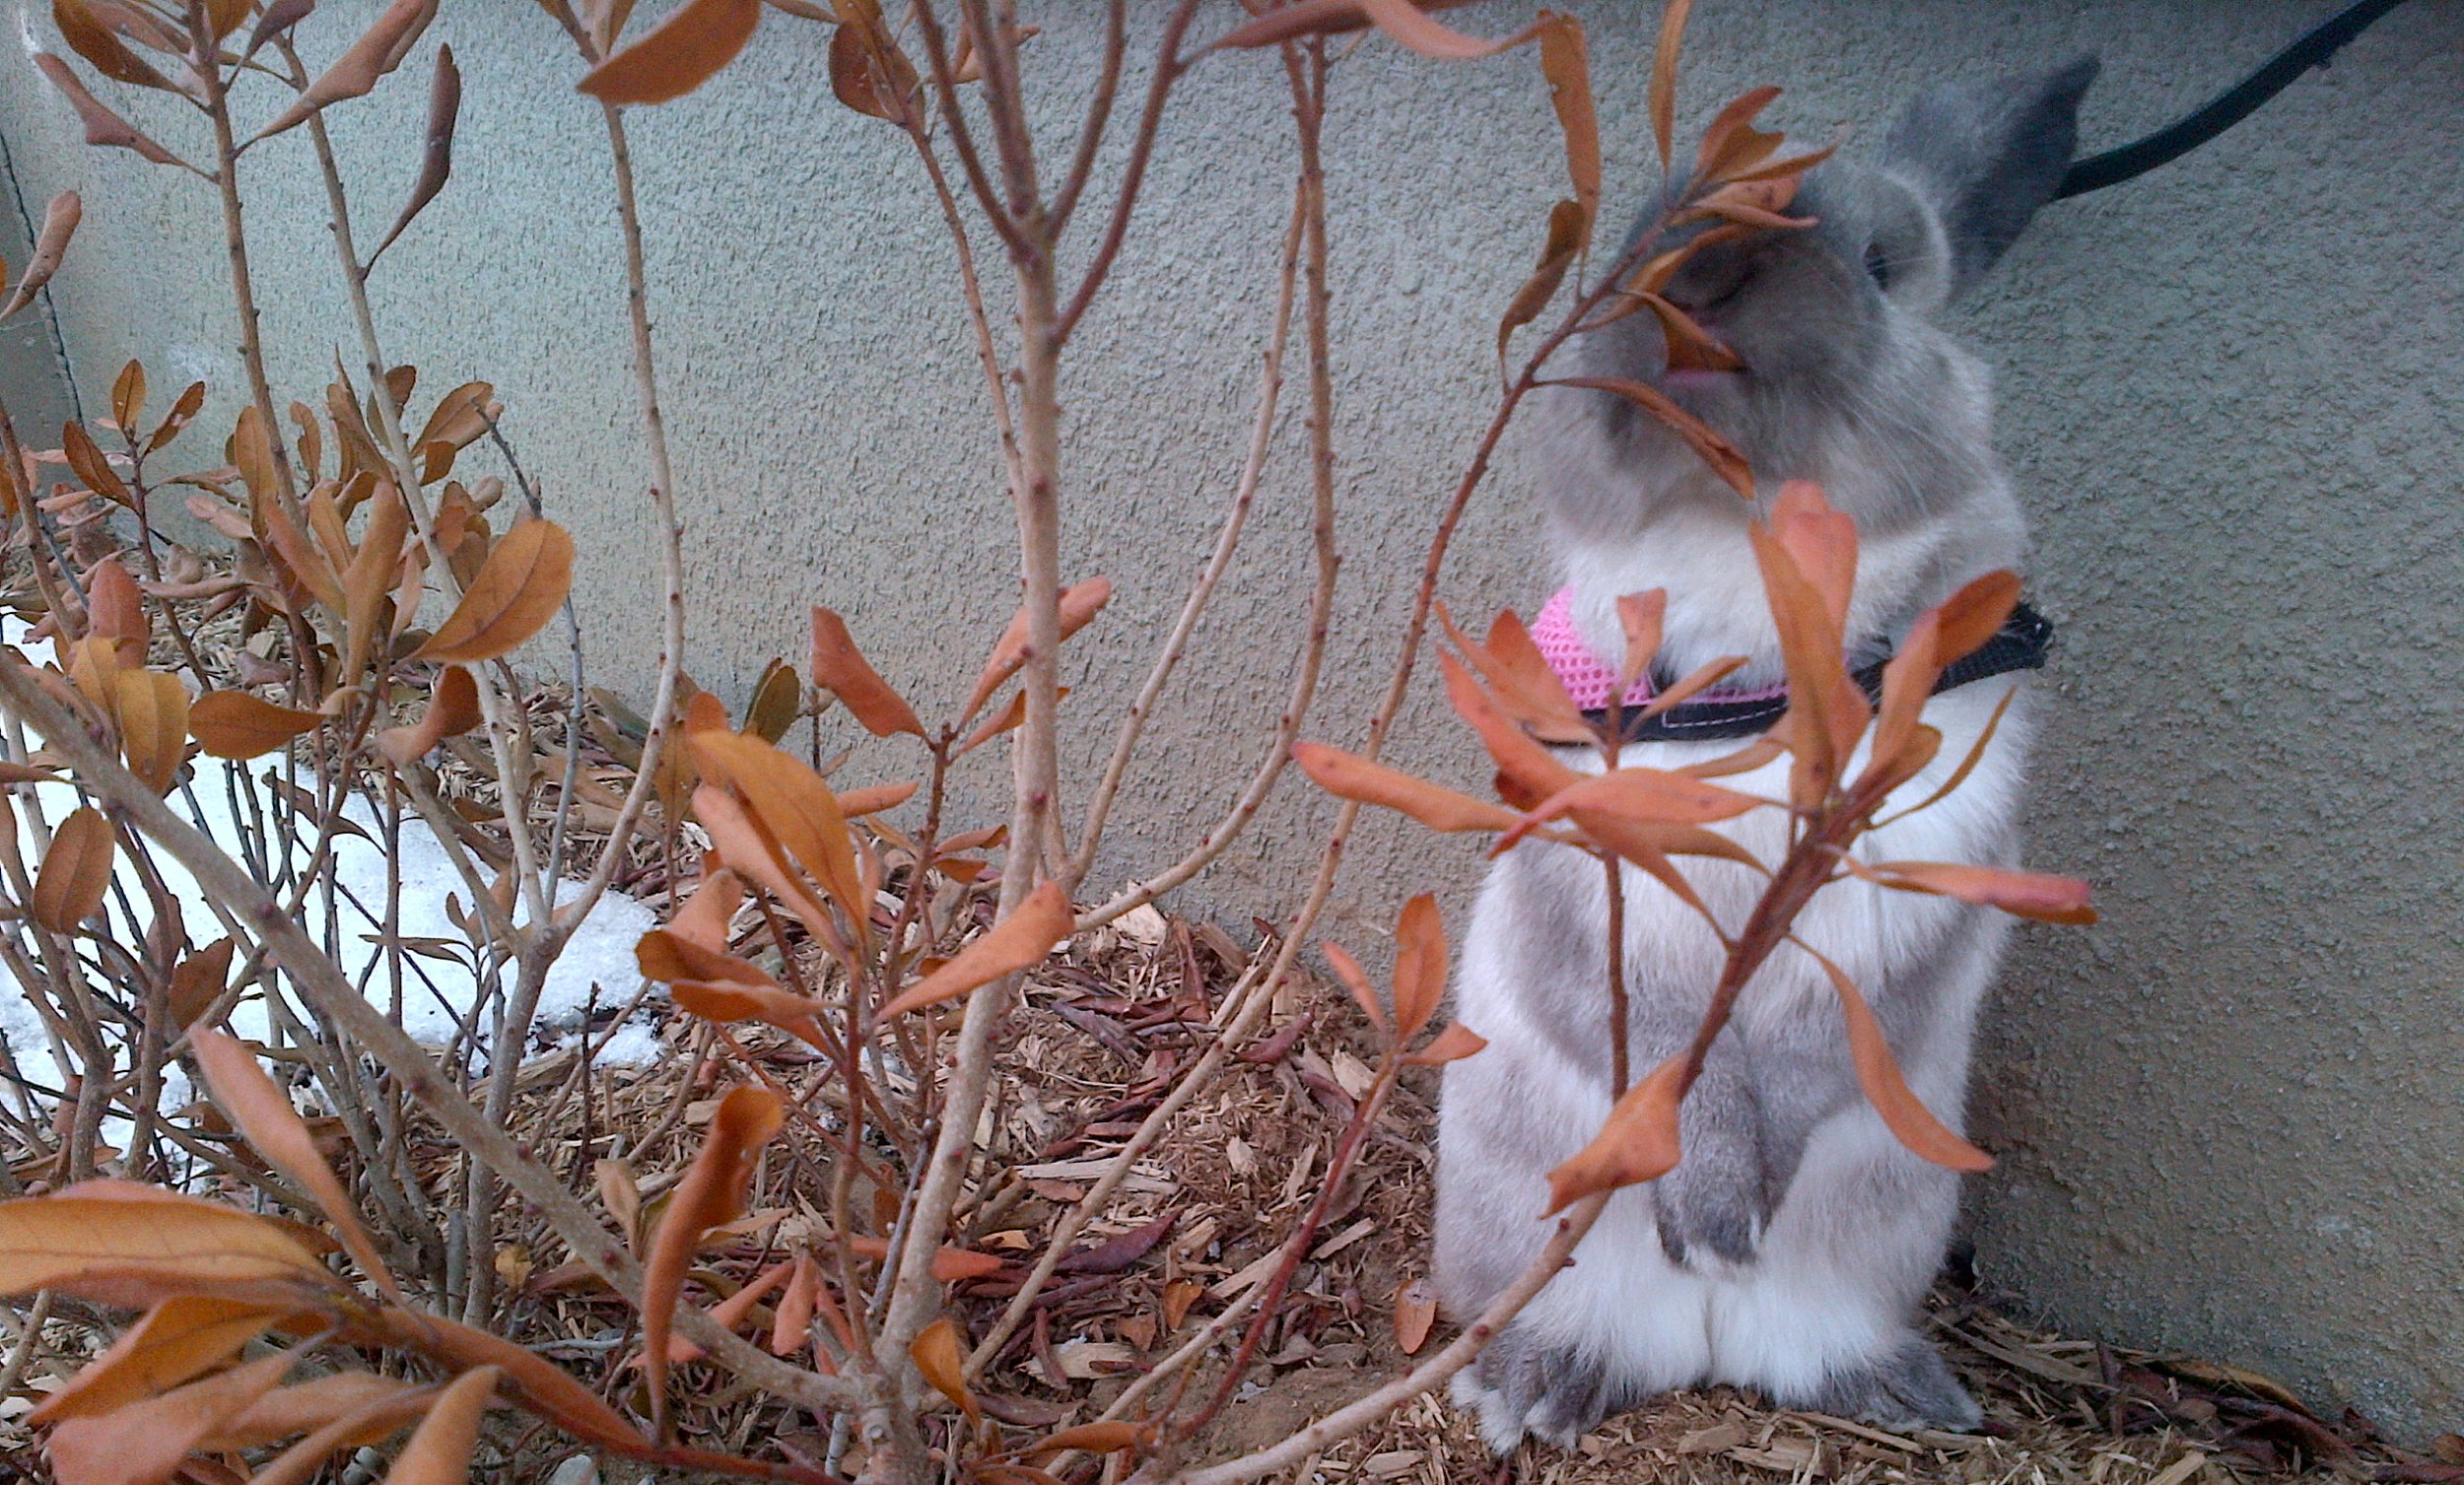 Bunny Samples a Dry Leaf on a Trip to the Backyard